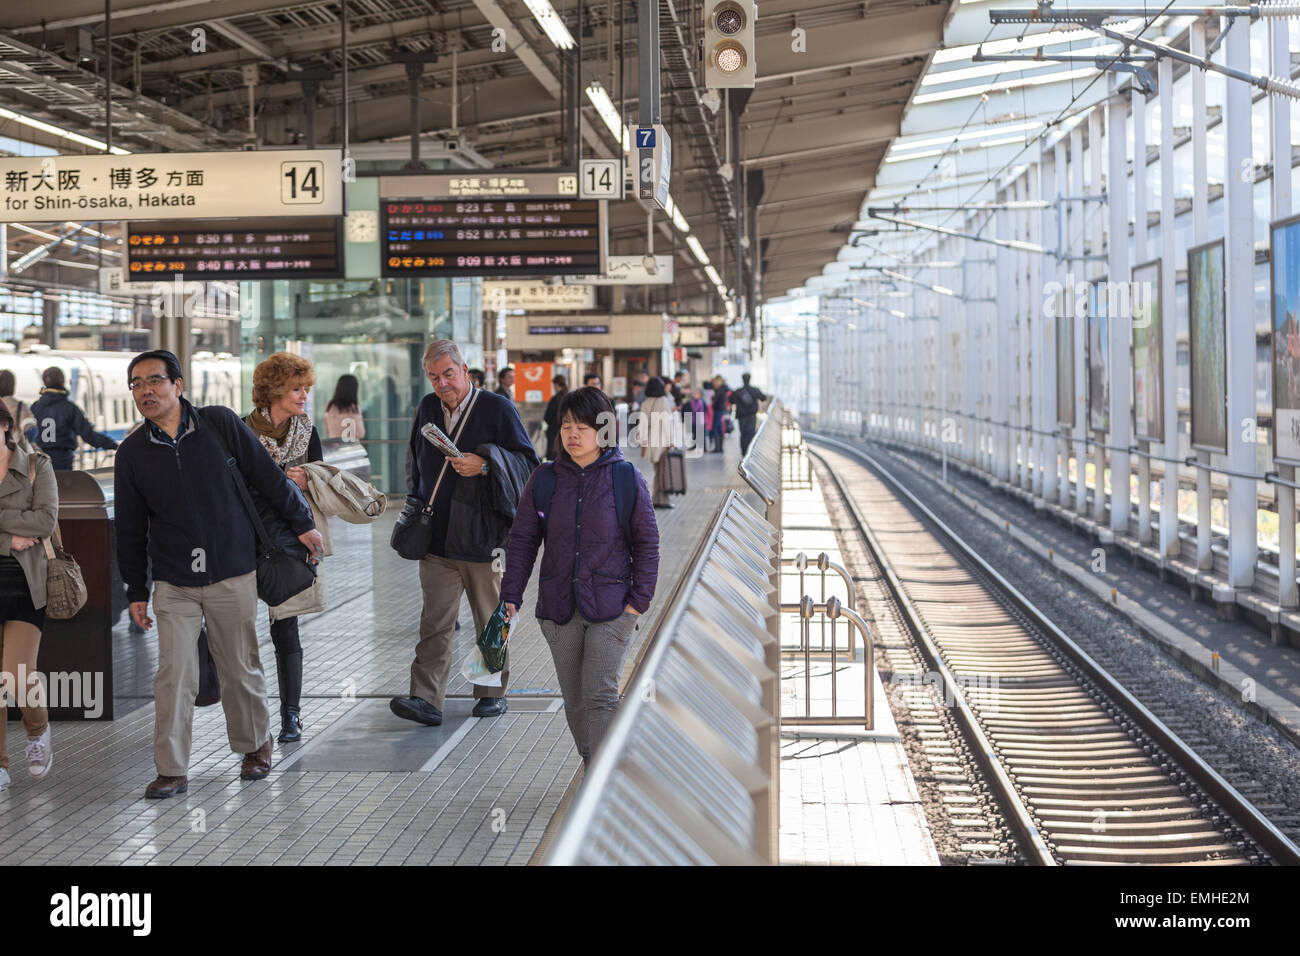 TOKYO, JAPAN - CIRCA APR, 2013: People walk on the Tokyo station platform. Empty railway. The Tokyo Station is a Stock Photo